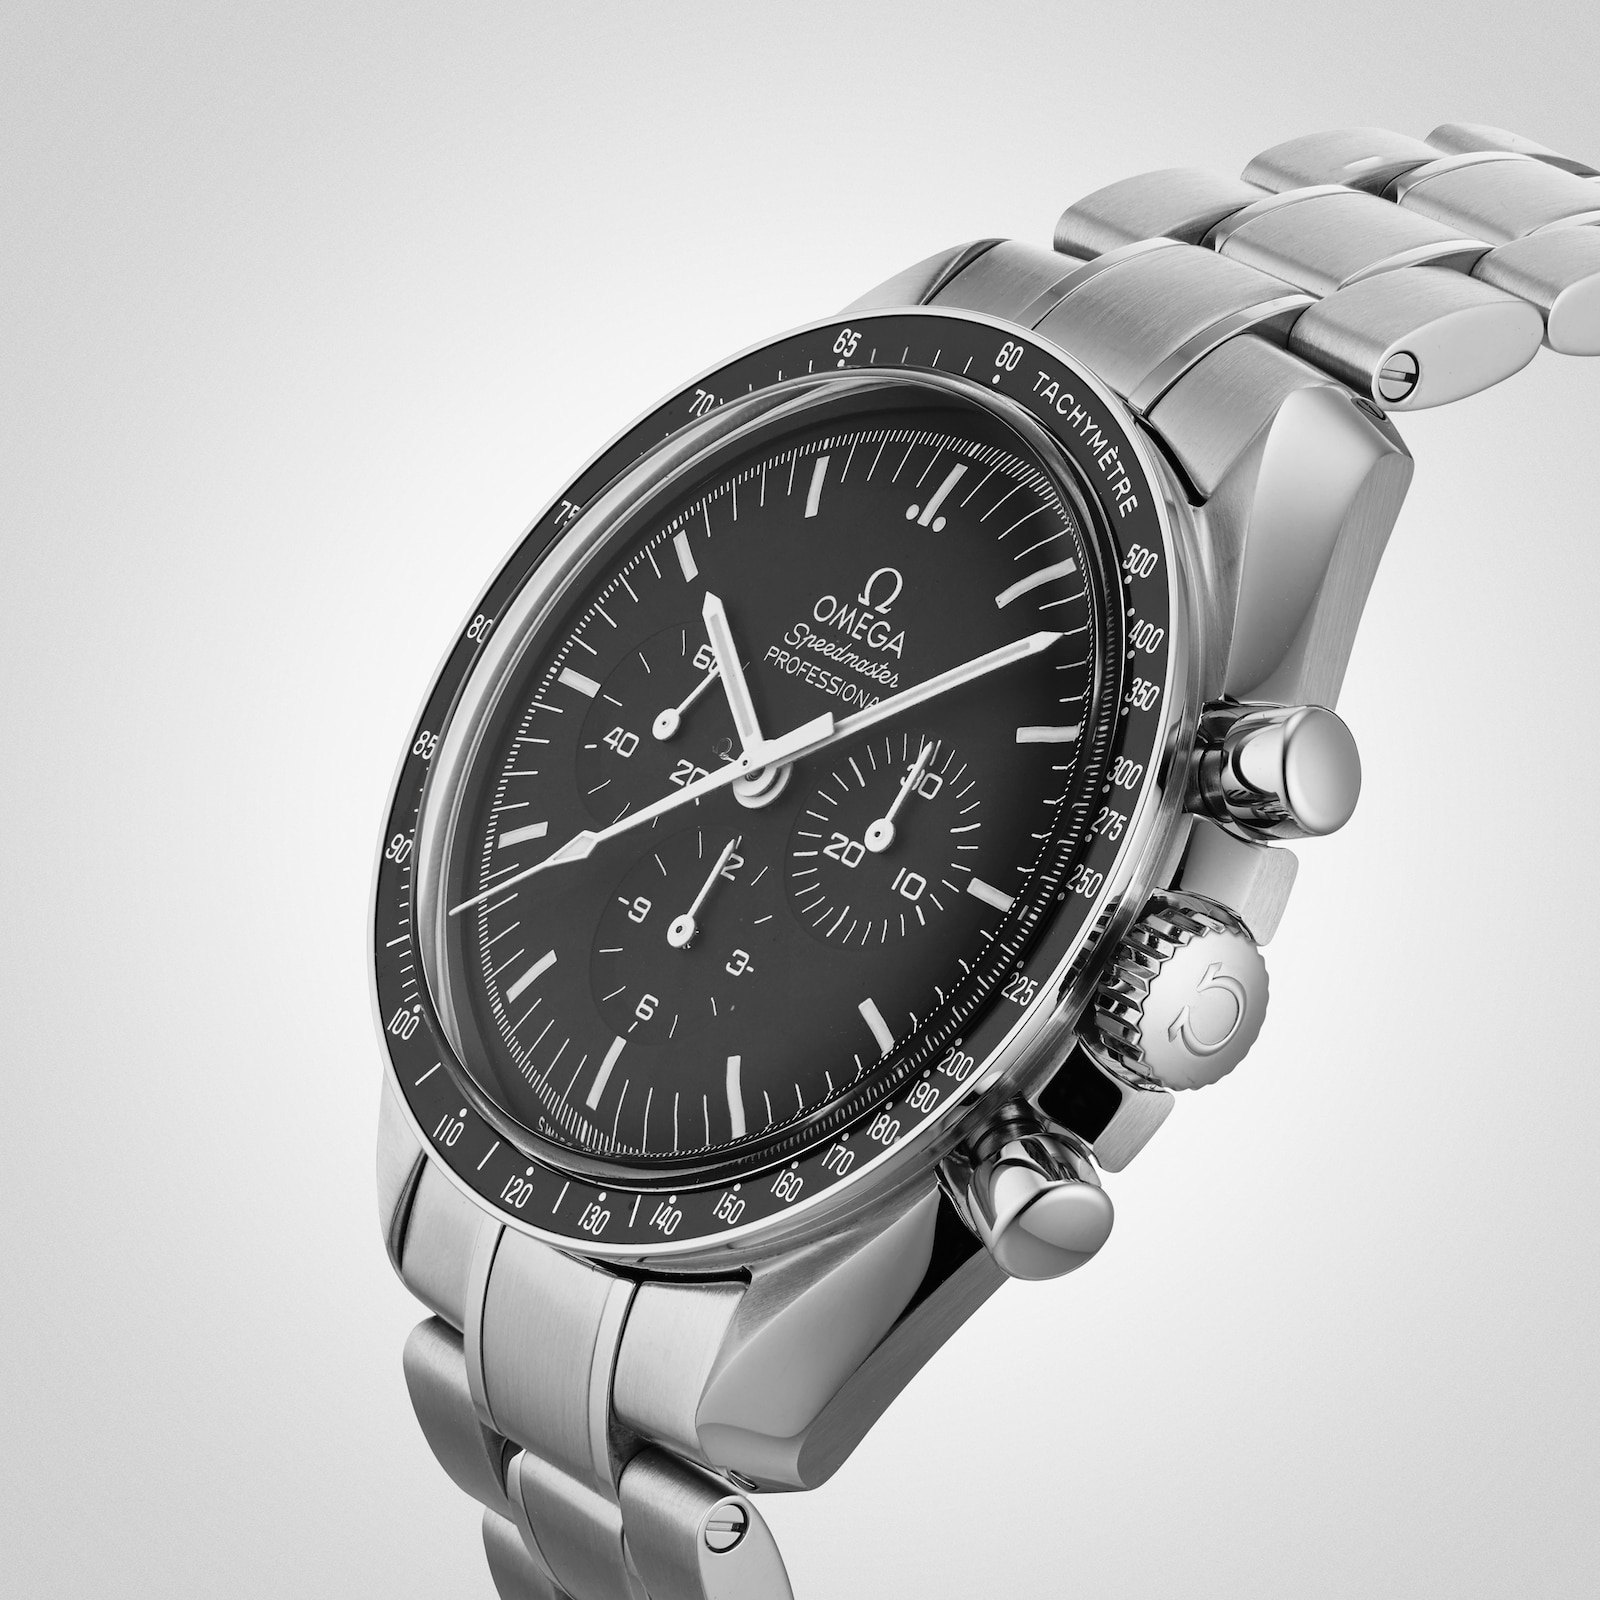 Omega Speedmaster Professional Moonwatch First Watch On The Moon Certified By NASA